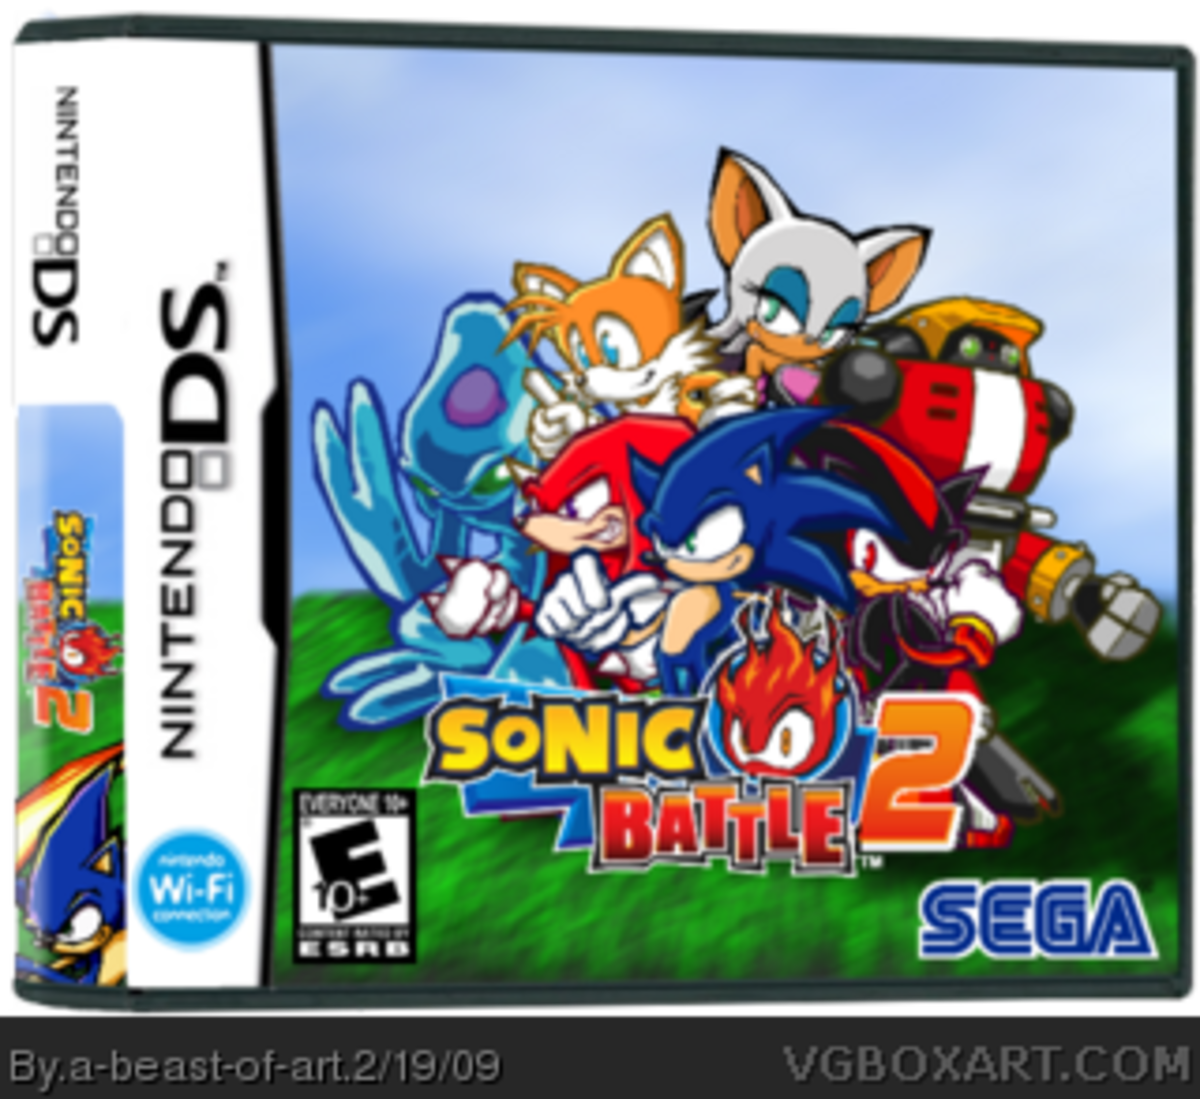 Sonic Battle 2 Box Art by a-beast-of-art